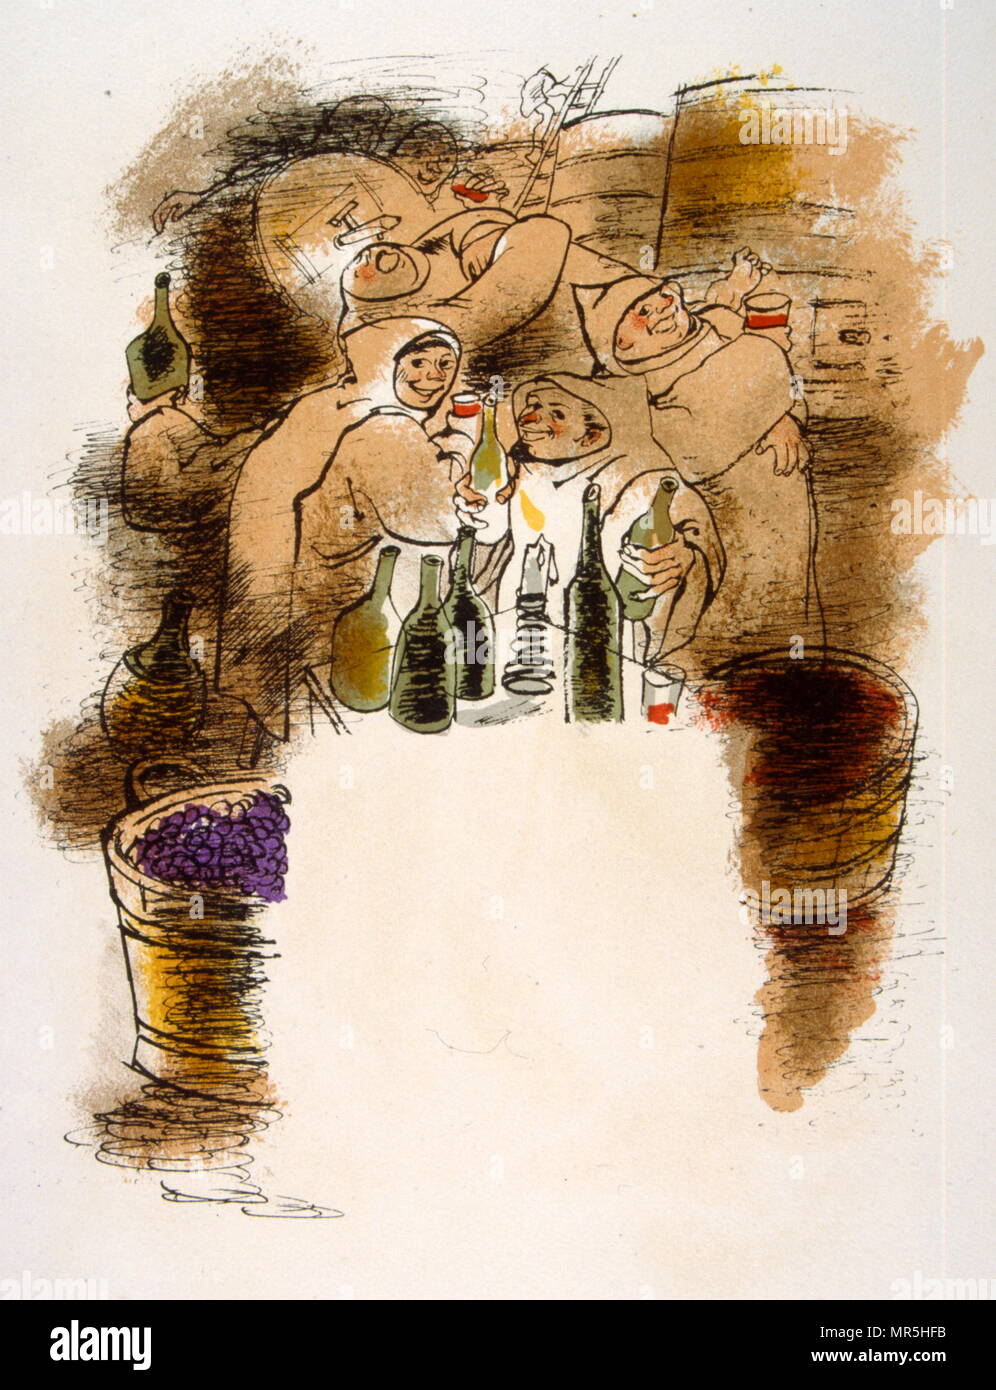 Humorous Wine Illustration 1946, Illustration by Julien Pavil, (1895-1952), French 20th century illustrator, humourist and poster artist. He illustrated several books between 1929 and 1945. - Stock Image